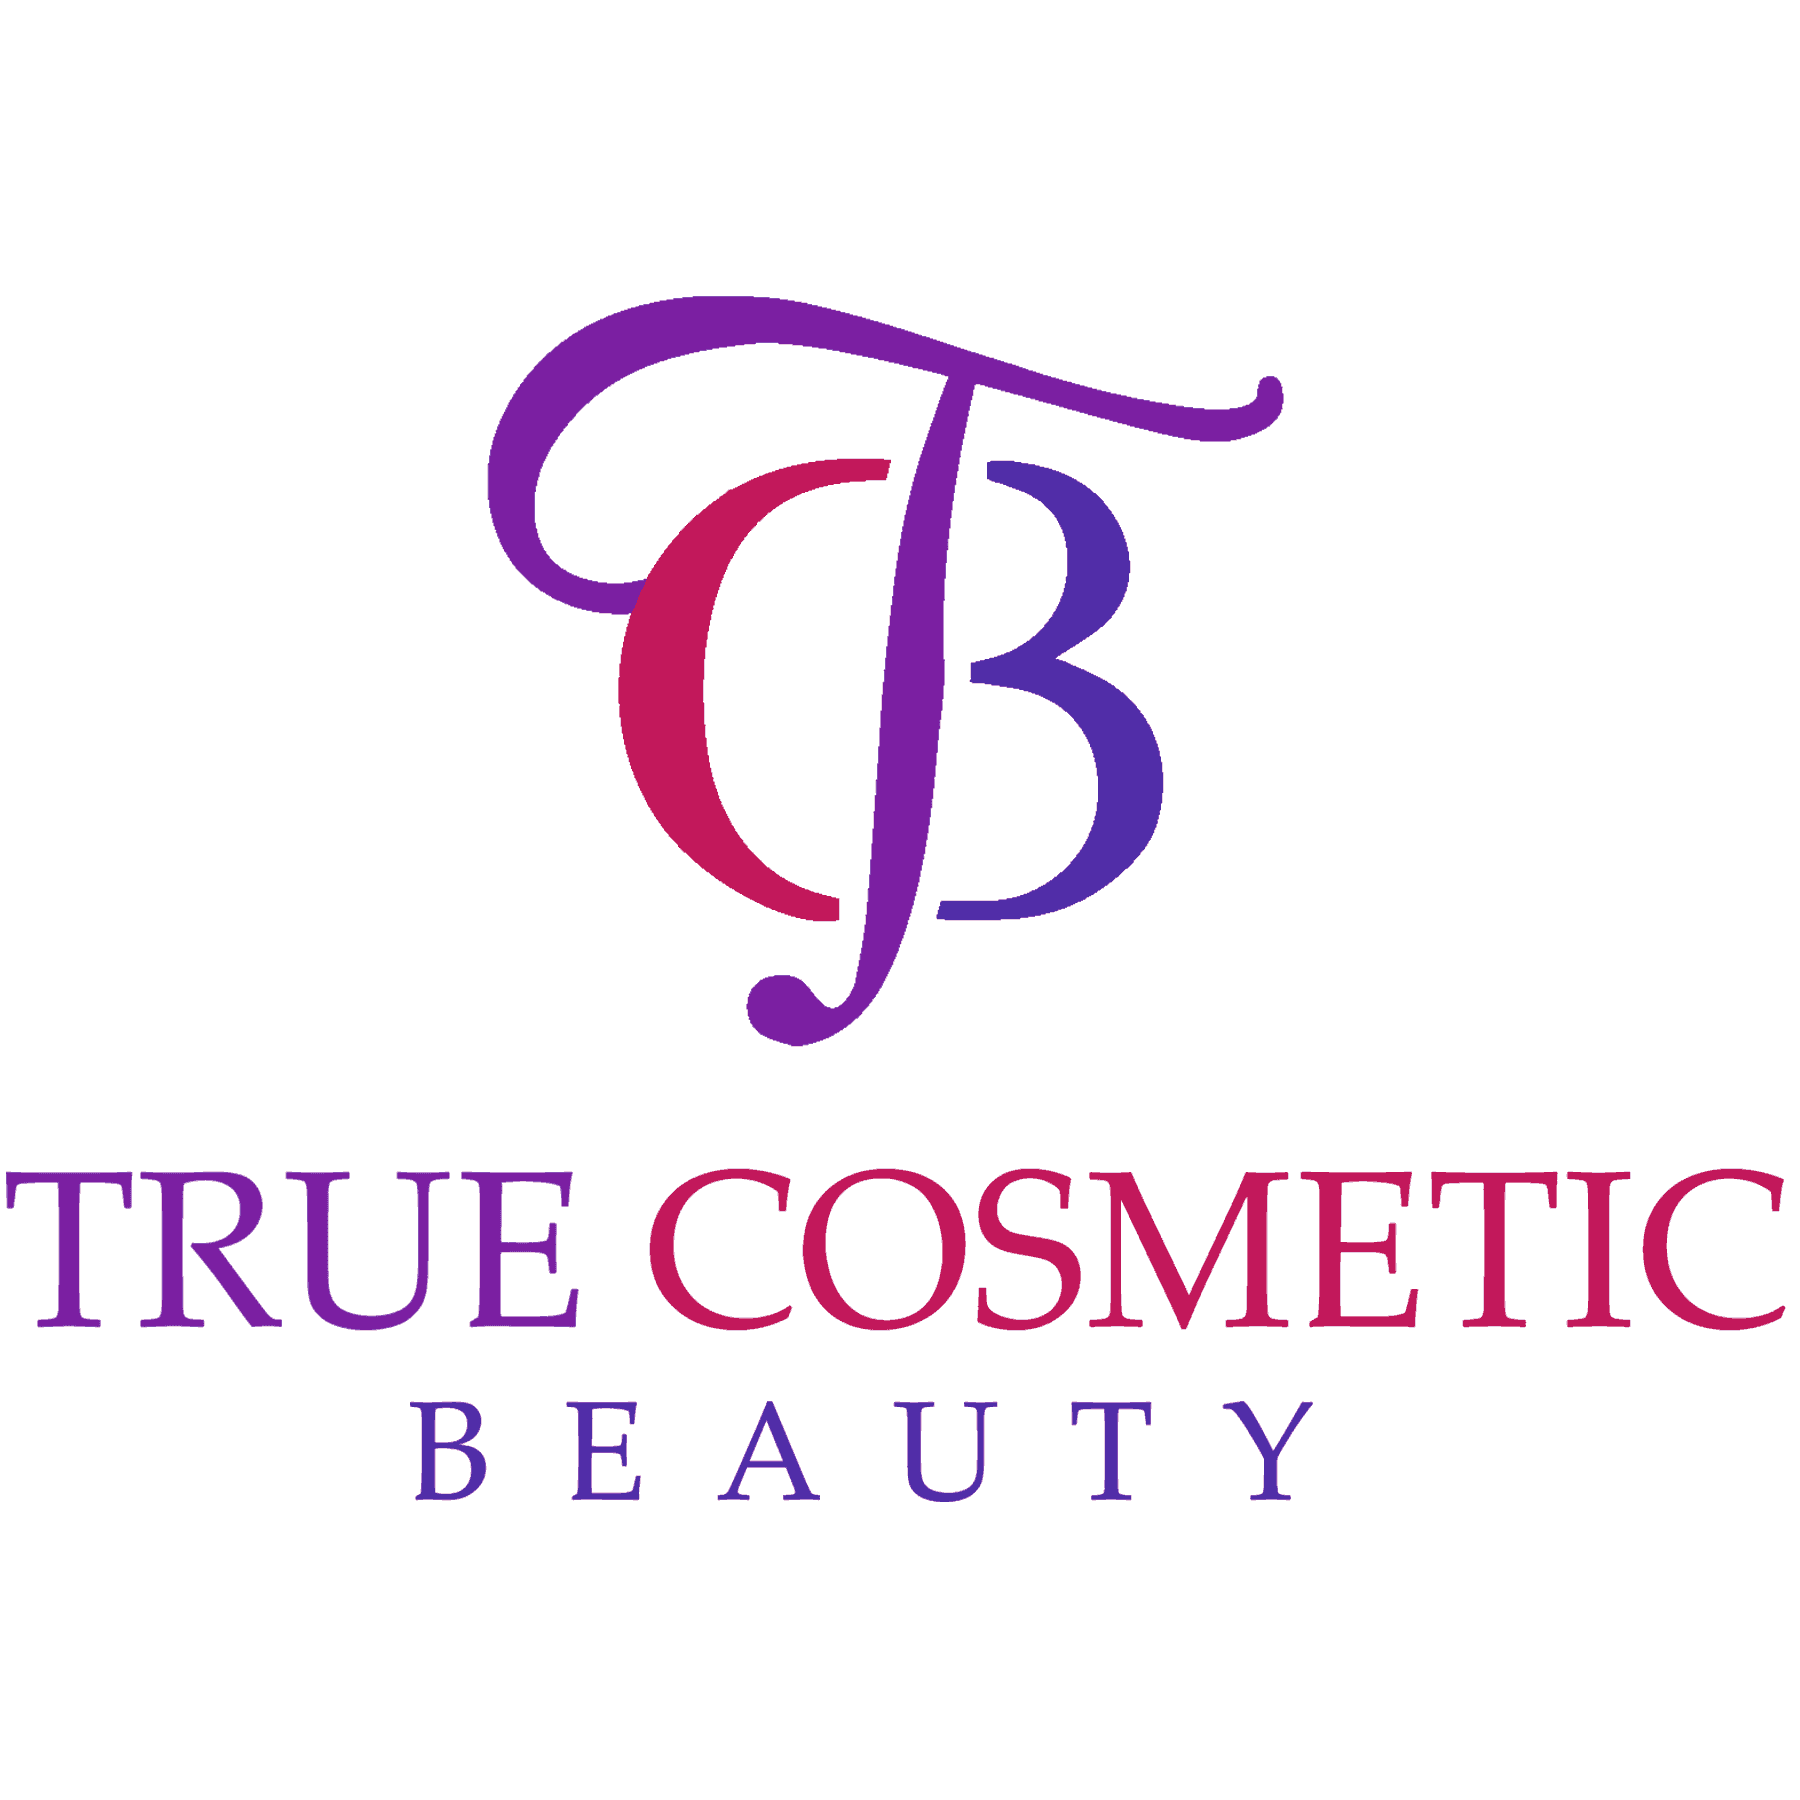 True Cosmetic Beauty